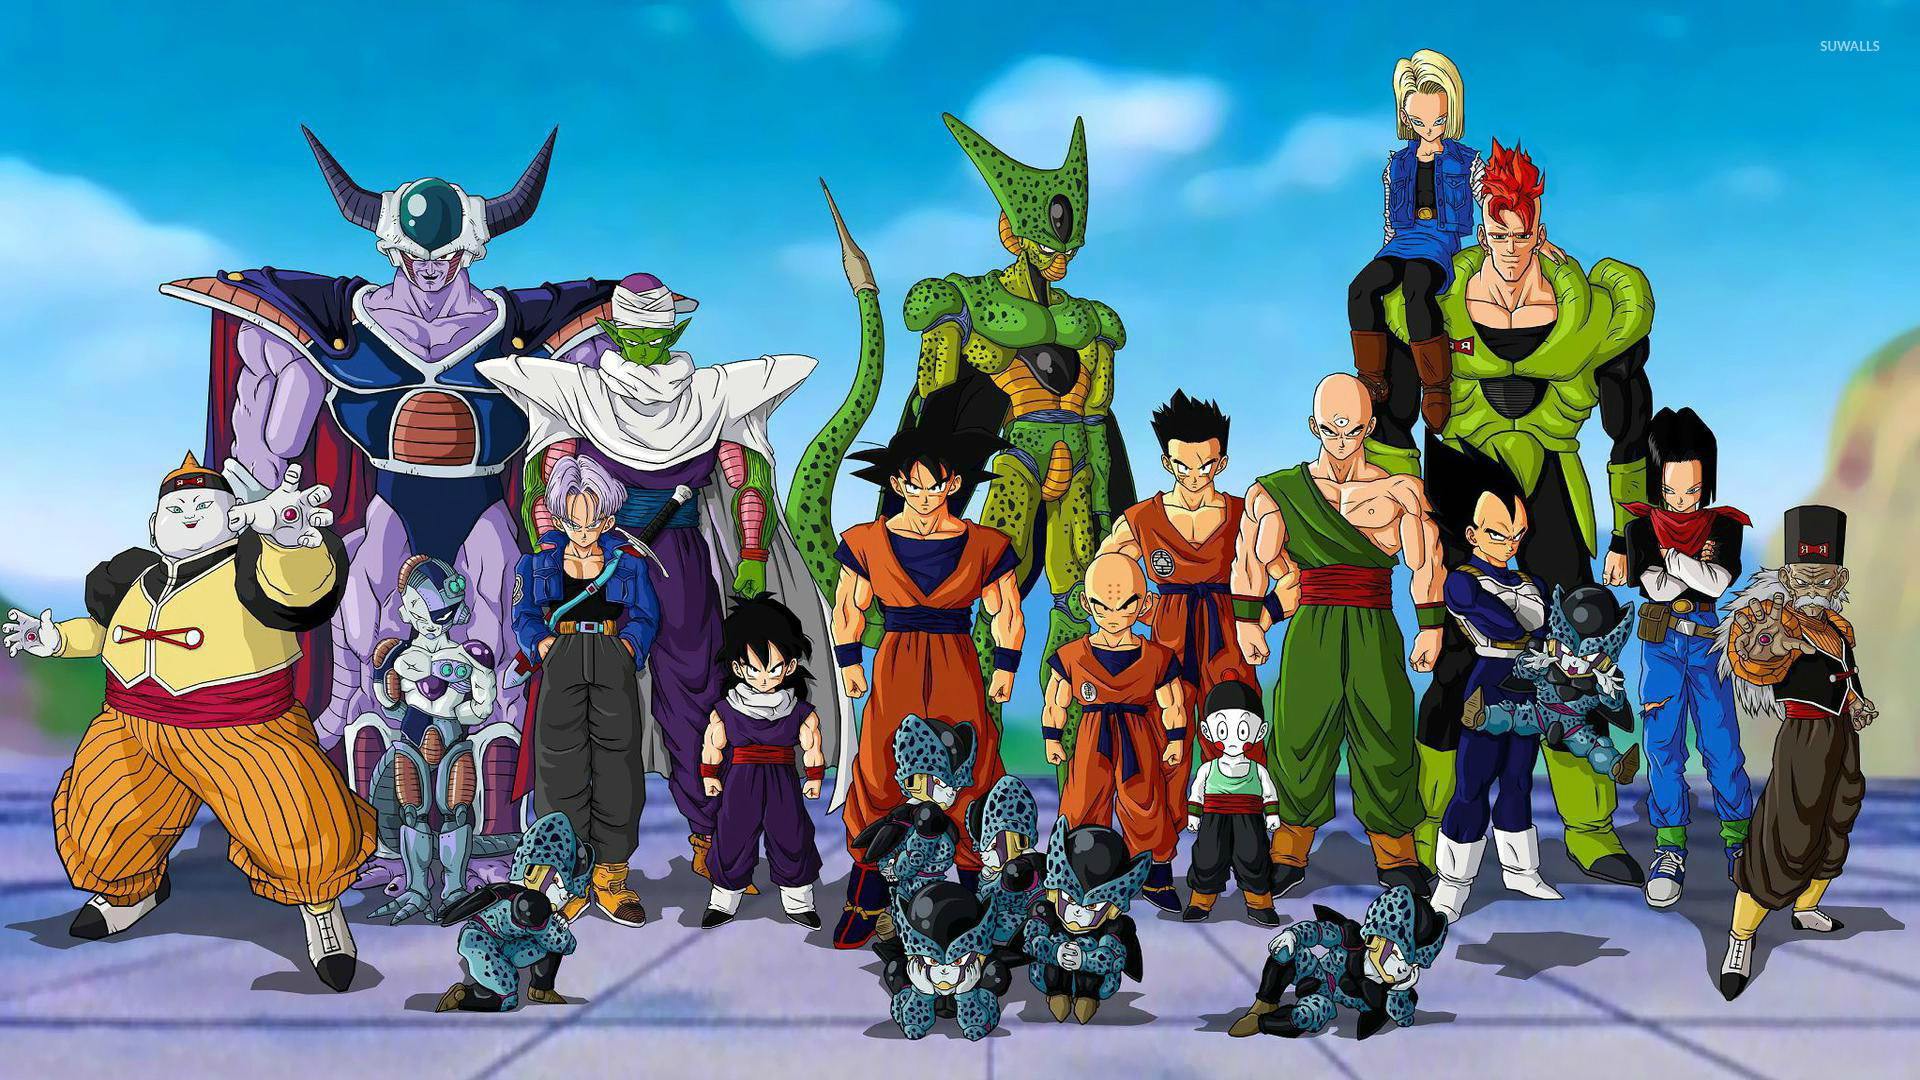 Share the best gifs now >>> Dragon Ball Z 4 wallpaper - Anime wallpapers - #16145